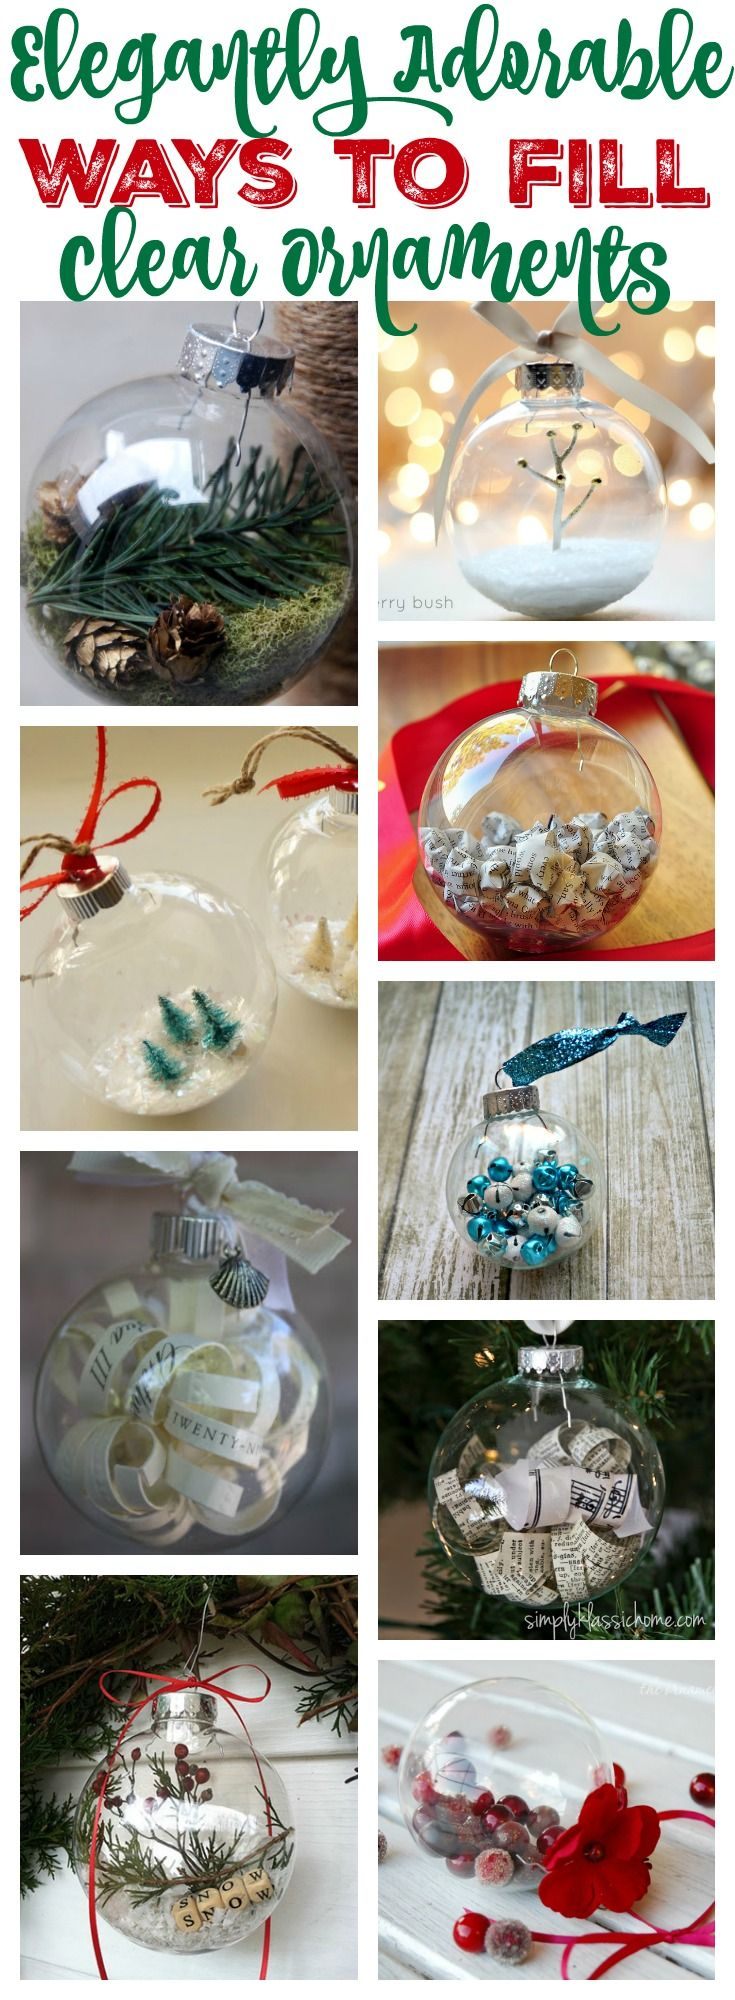 Elegantly Adorable Ways to Fill Clear Ornaments at thehappyhousie.com AND MORE - links to more fillers, some with tutorials, some very simple